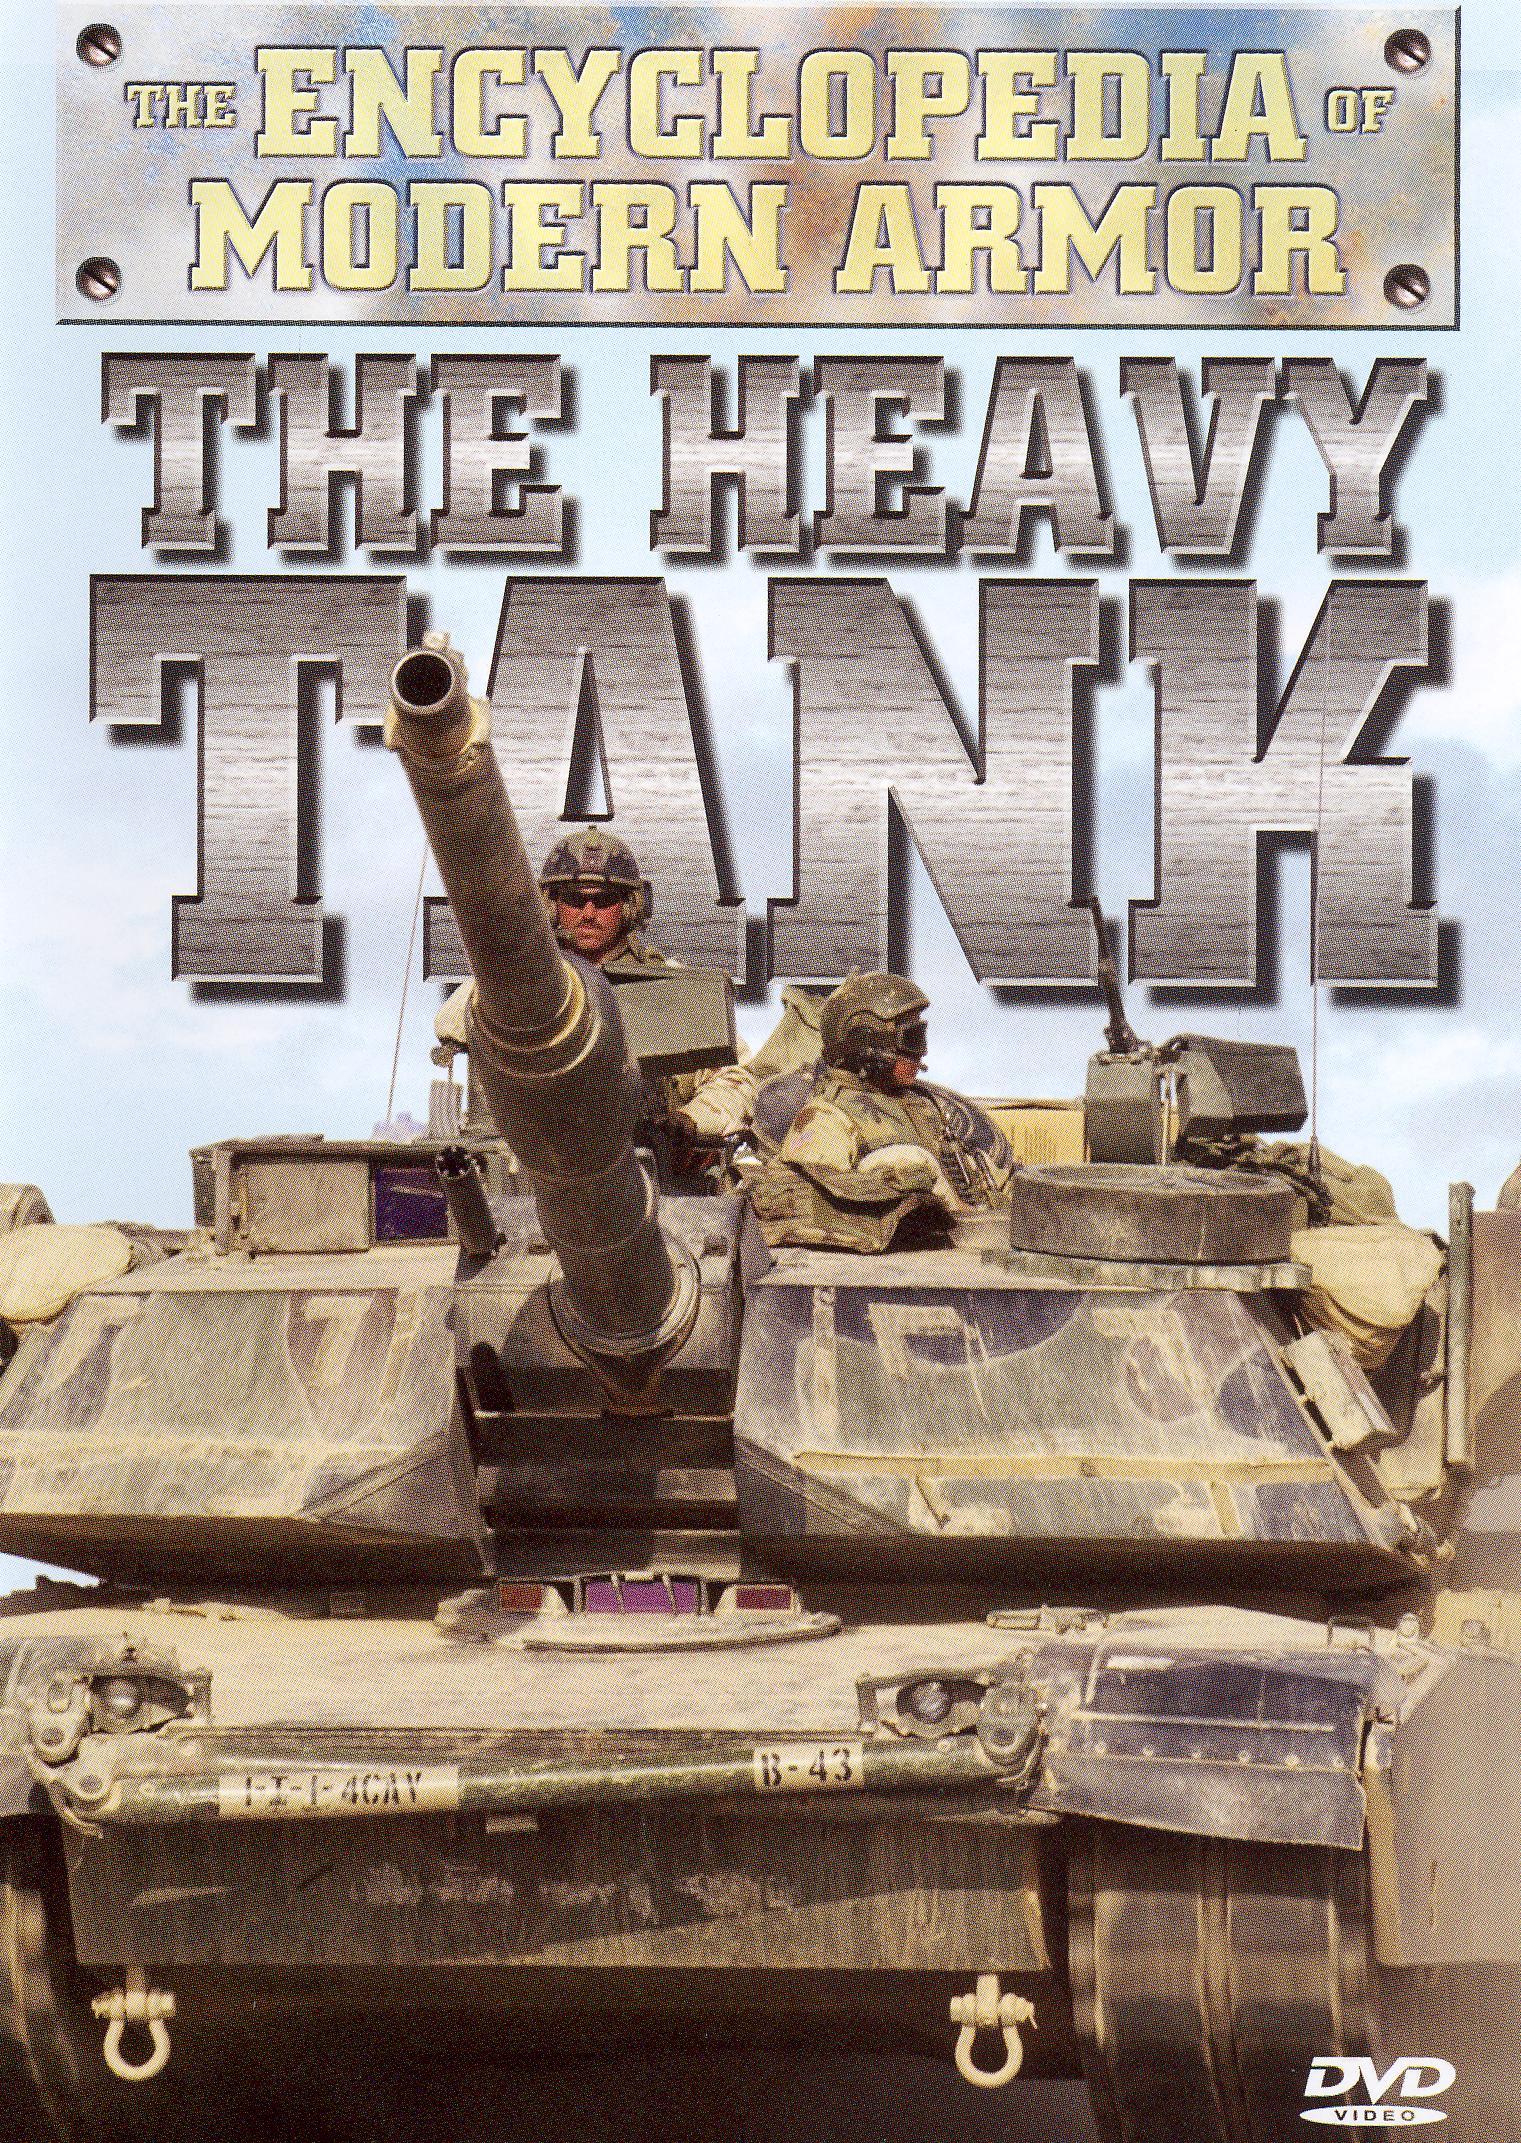 The Encyclopedia of Modern Armor: The Heavy Tank